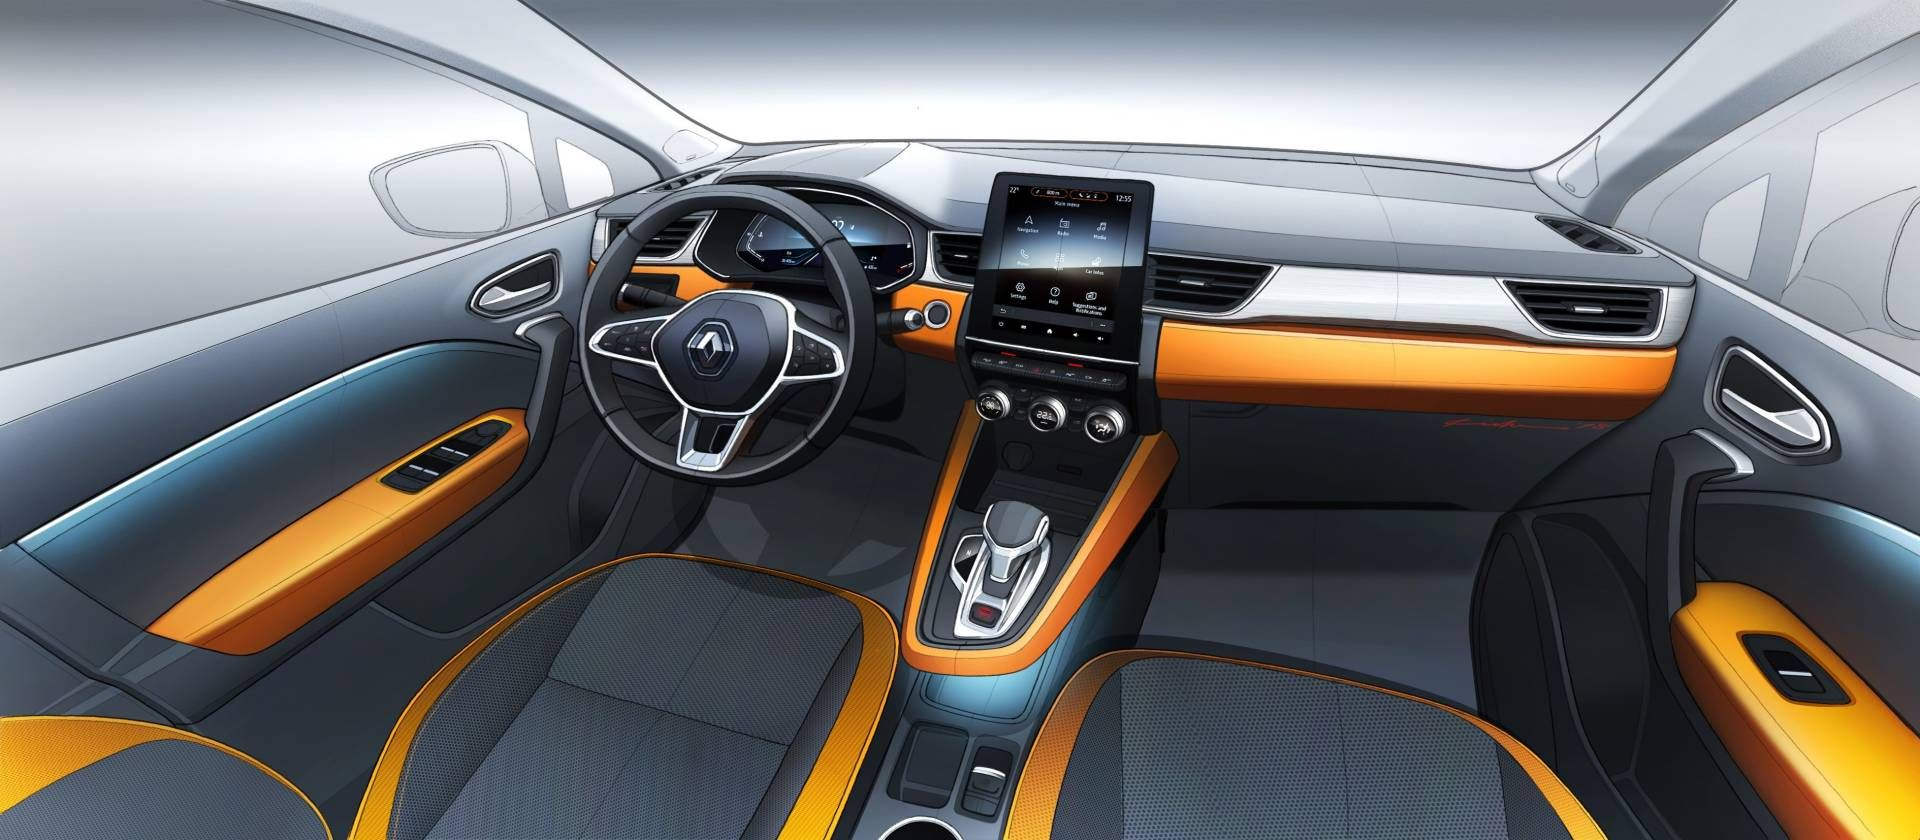 All New 2020 Renault Captur Is The Definition Of Evolution Renault Captur Renault New Renault